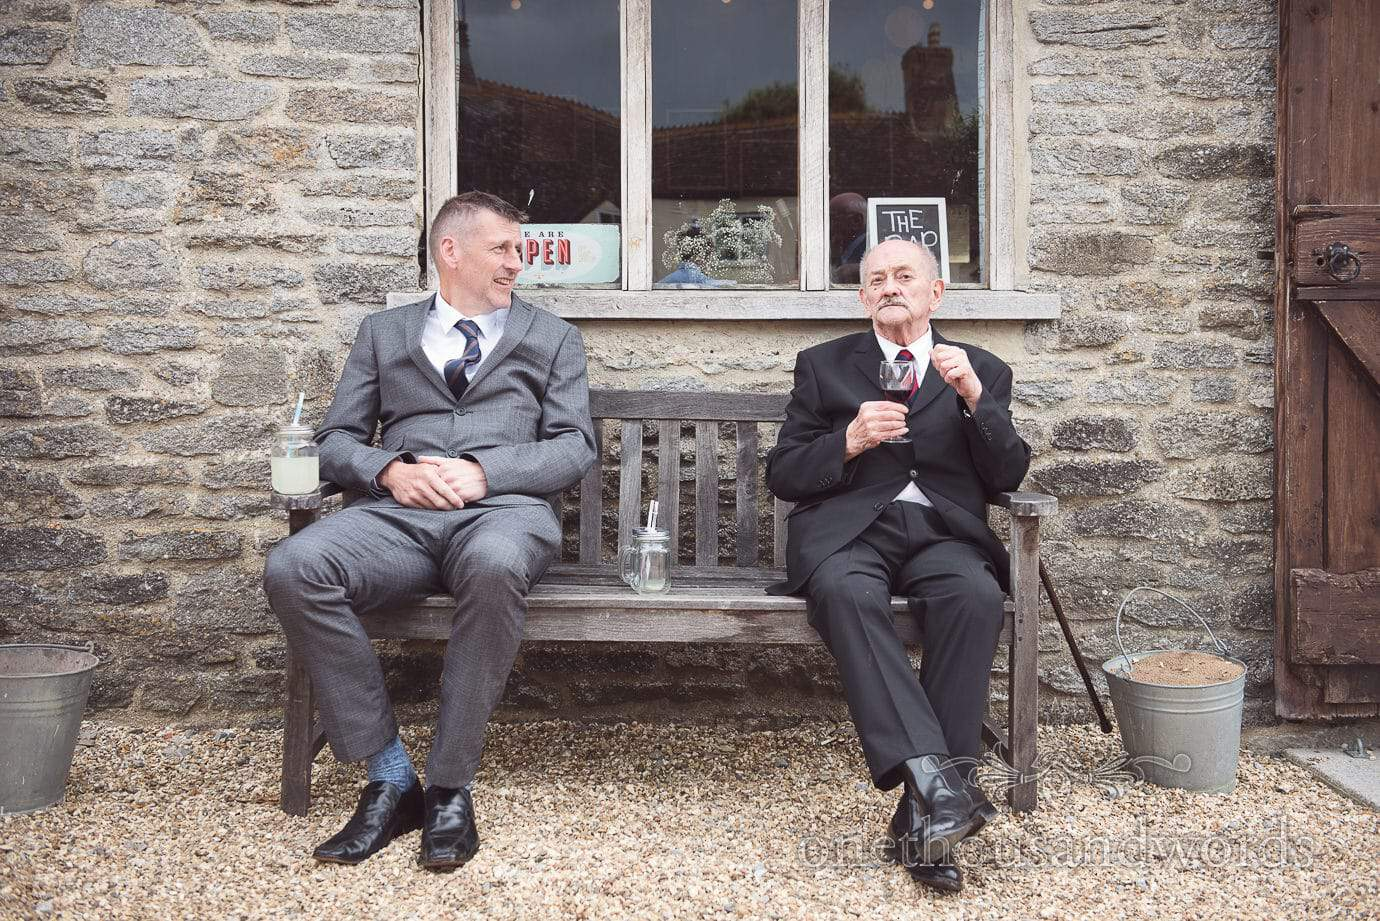 Two wedding guests take a break at rustic barn wedding